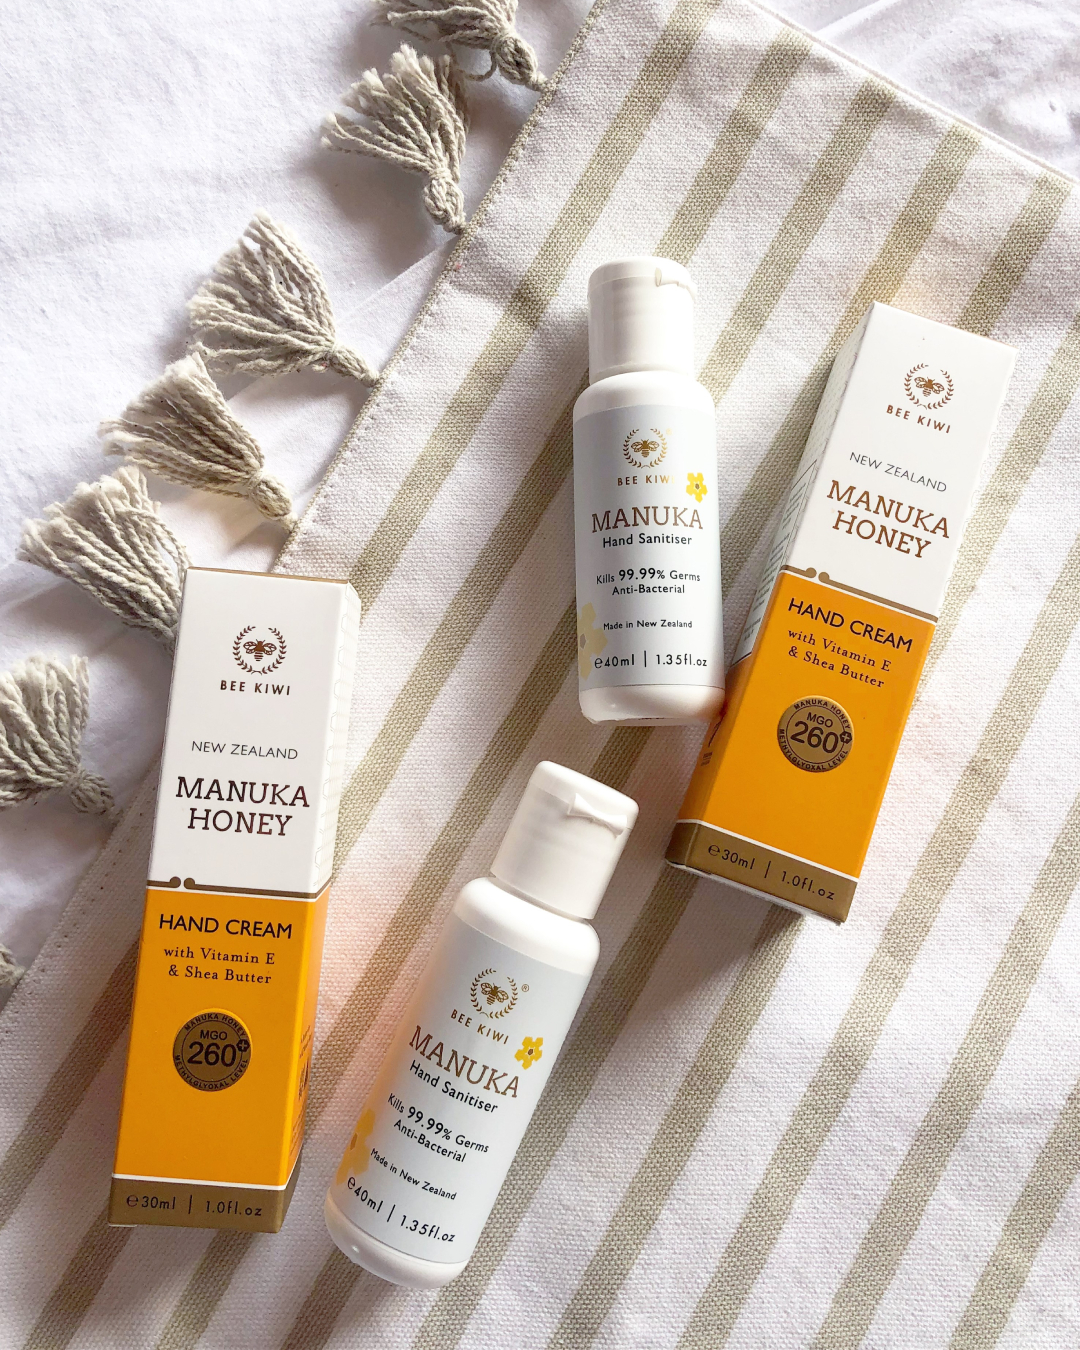 Manuka Honey Skin Care NZ Products; Hand Cream, Manuka Sanitiser | Bee Kiwi